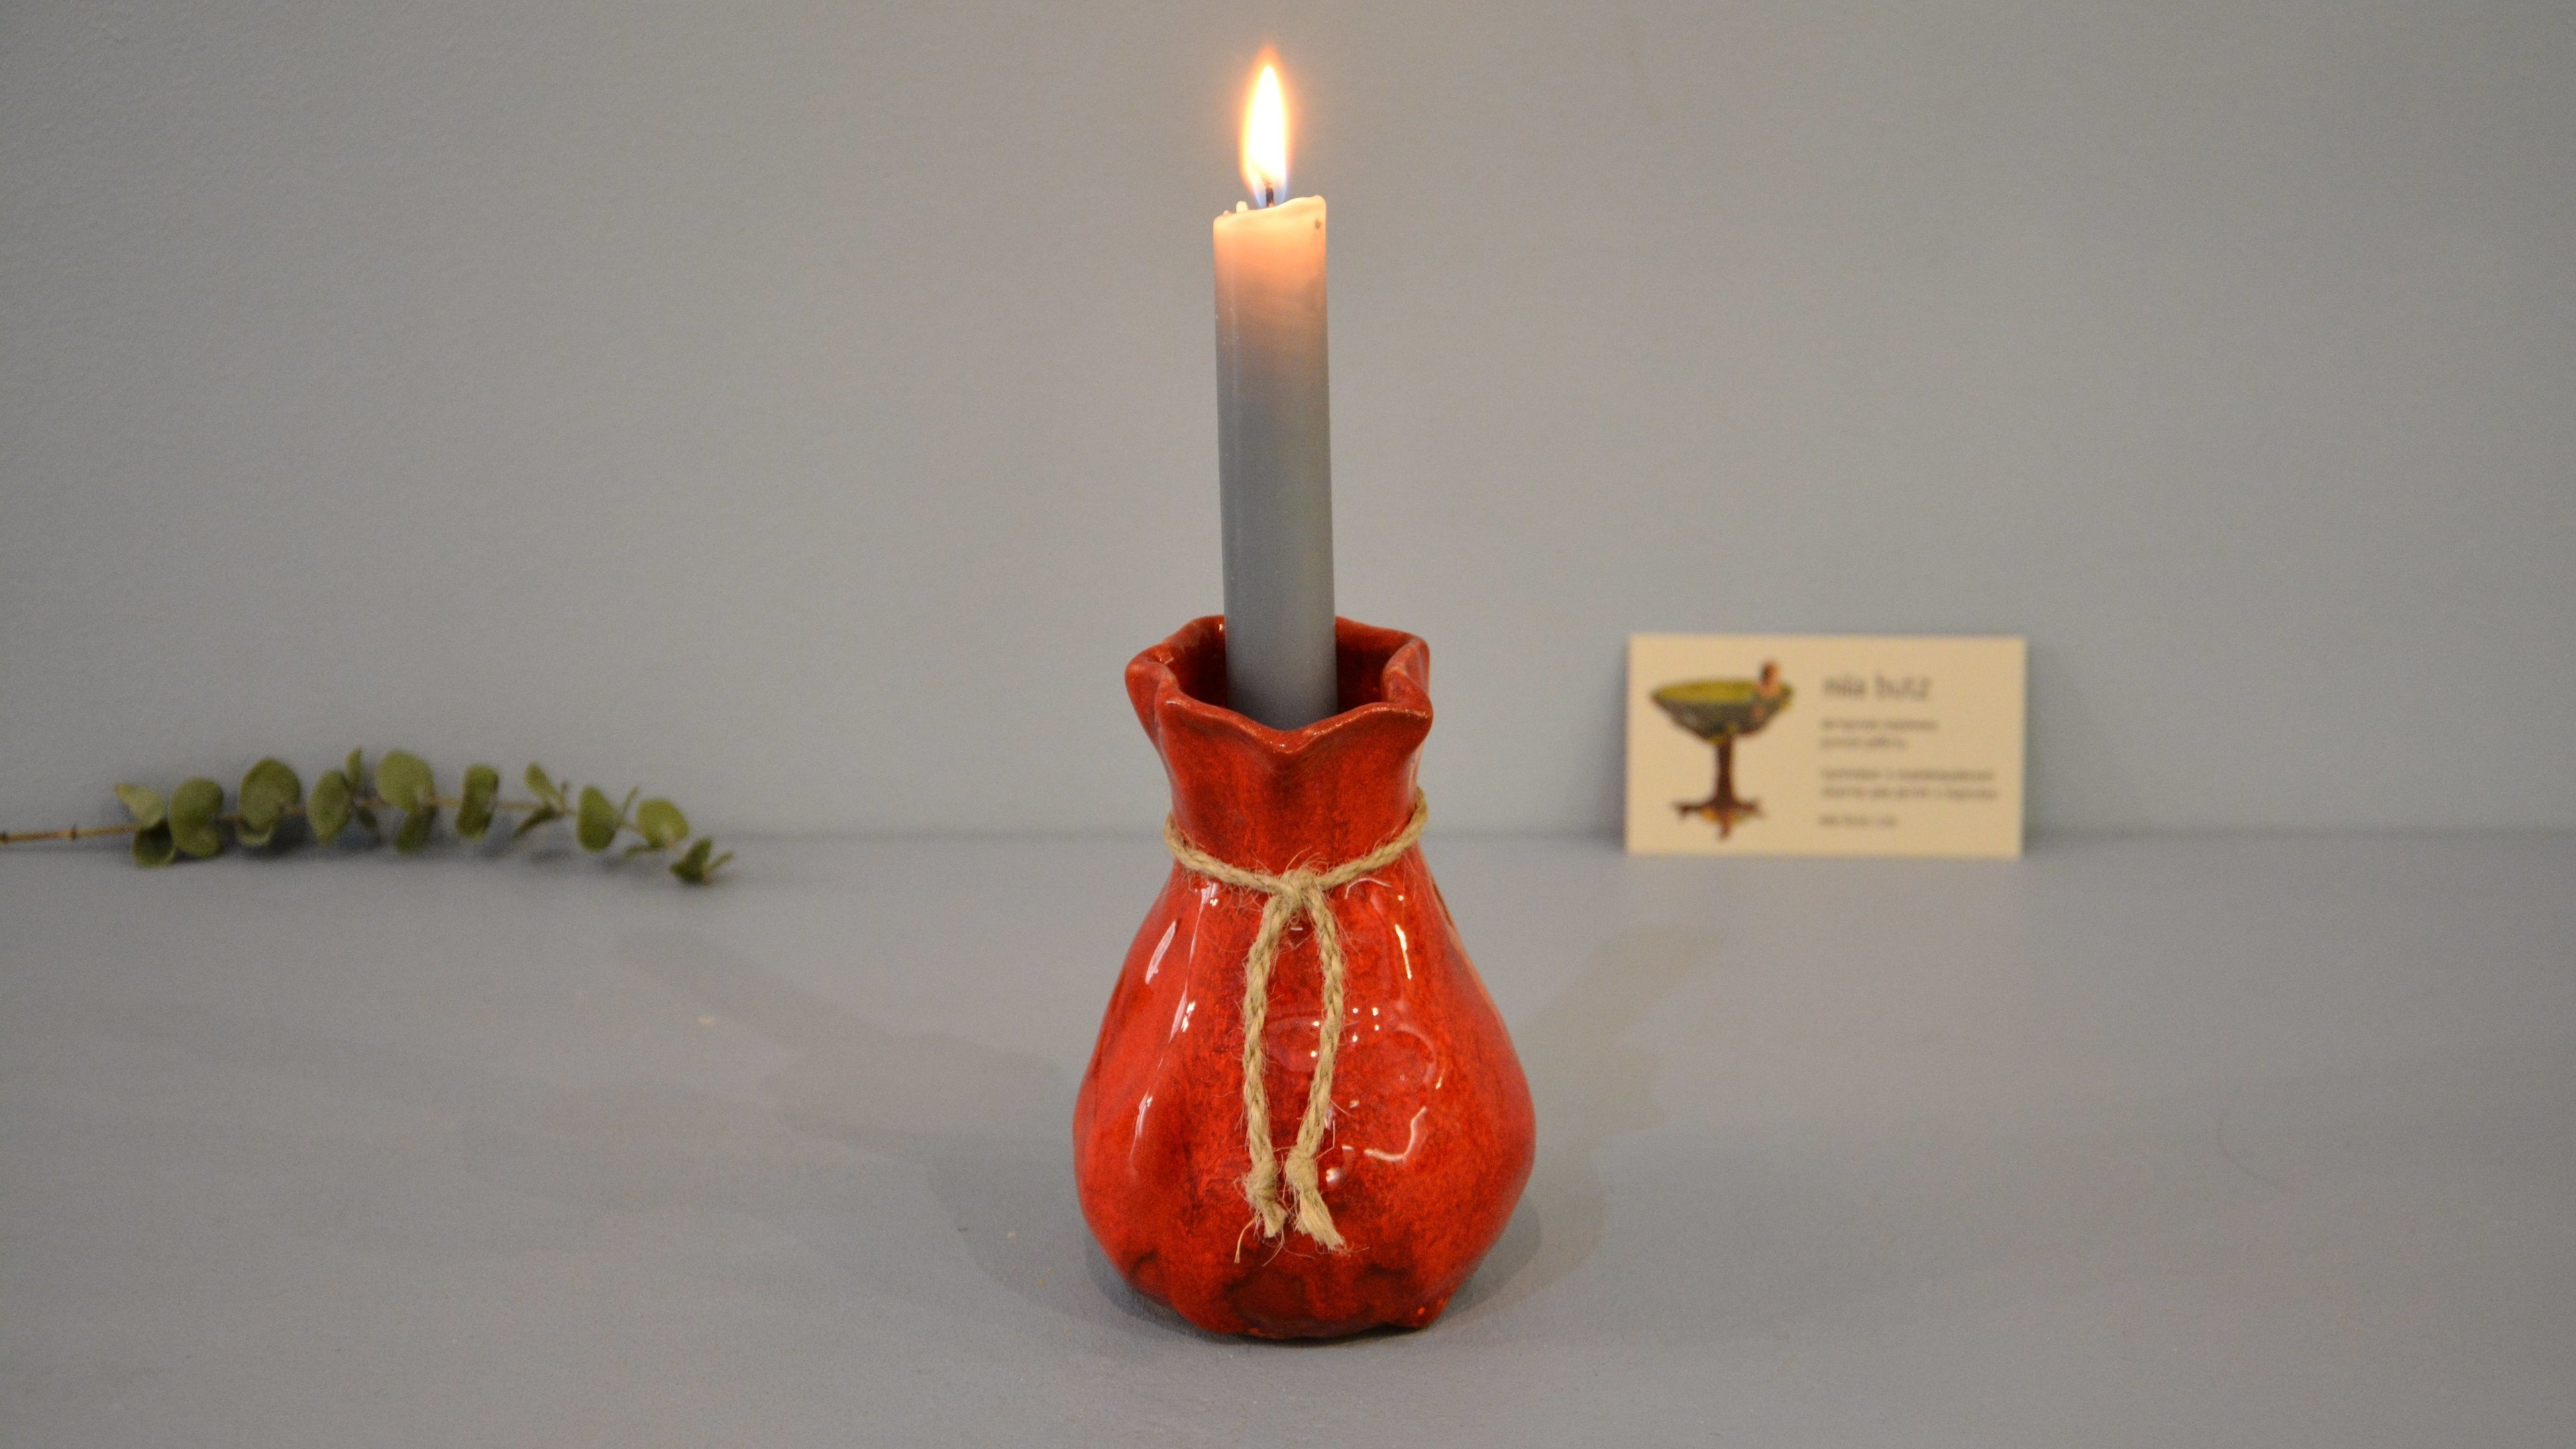 Candle vase «Red Bagful», height - 12 cm, color - red. Photo 1423-3840-2160.